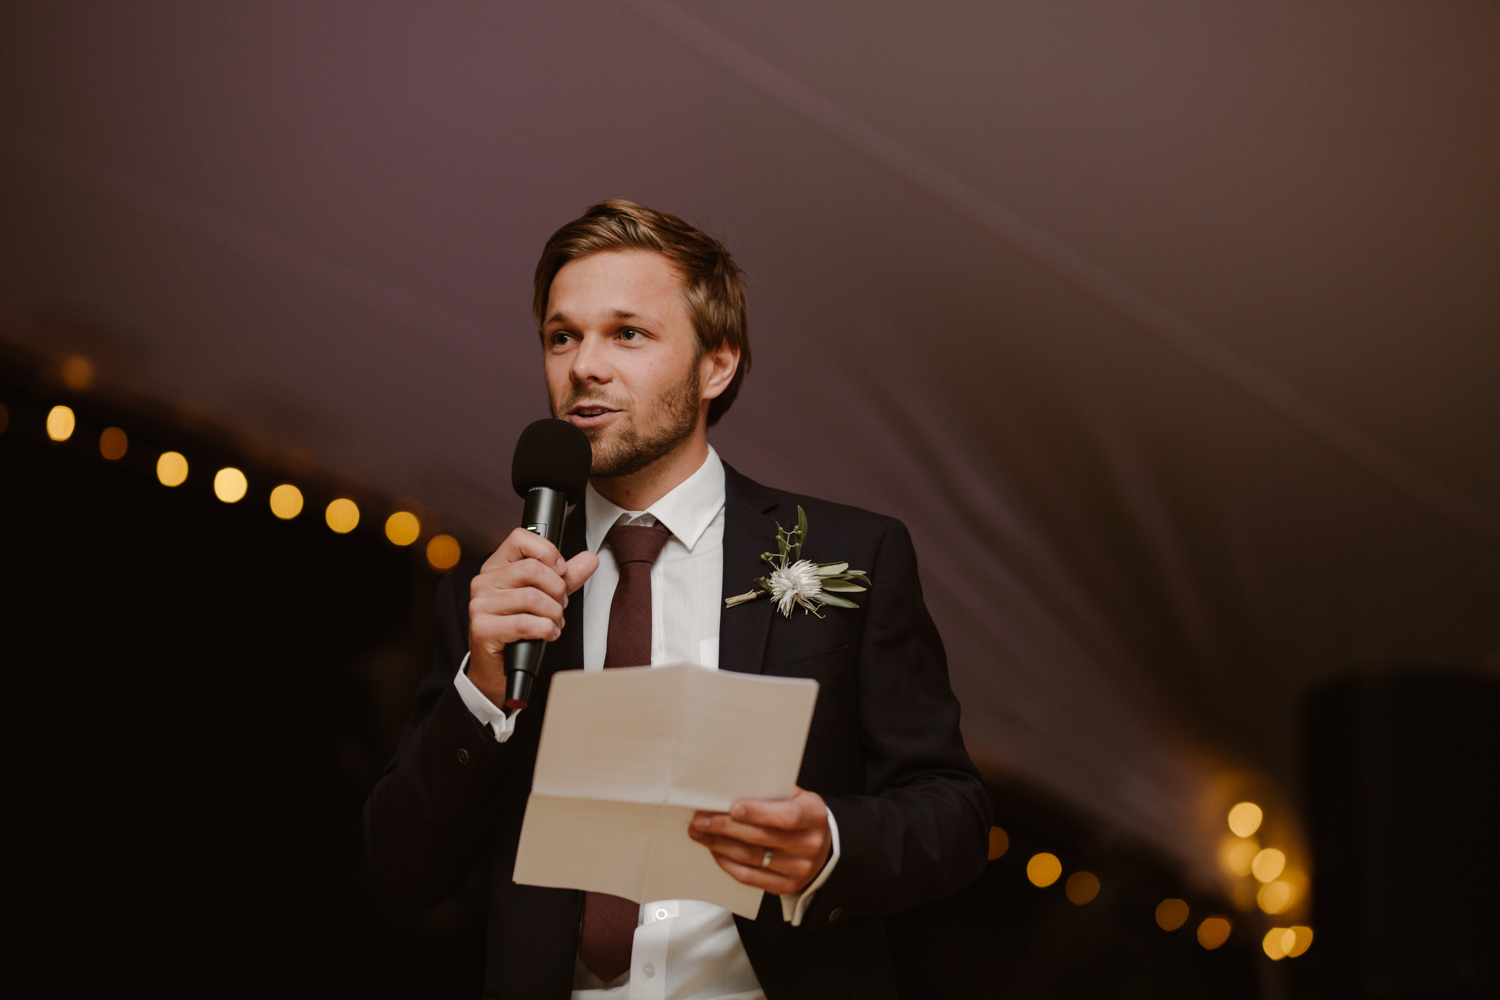 Young groom sharing a speech to close off the evenings festivities.